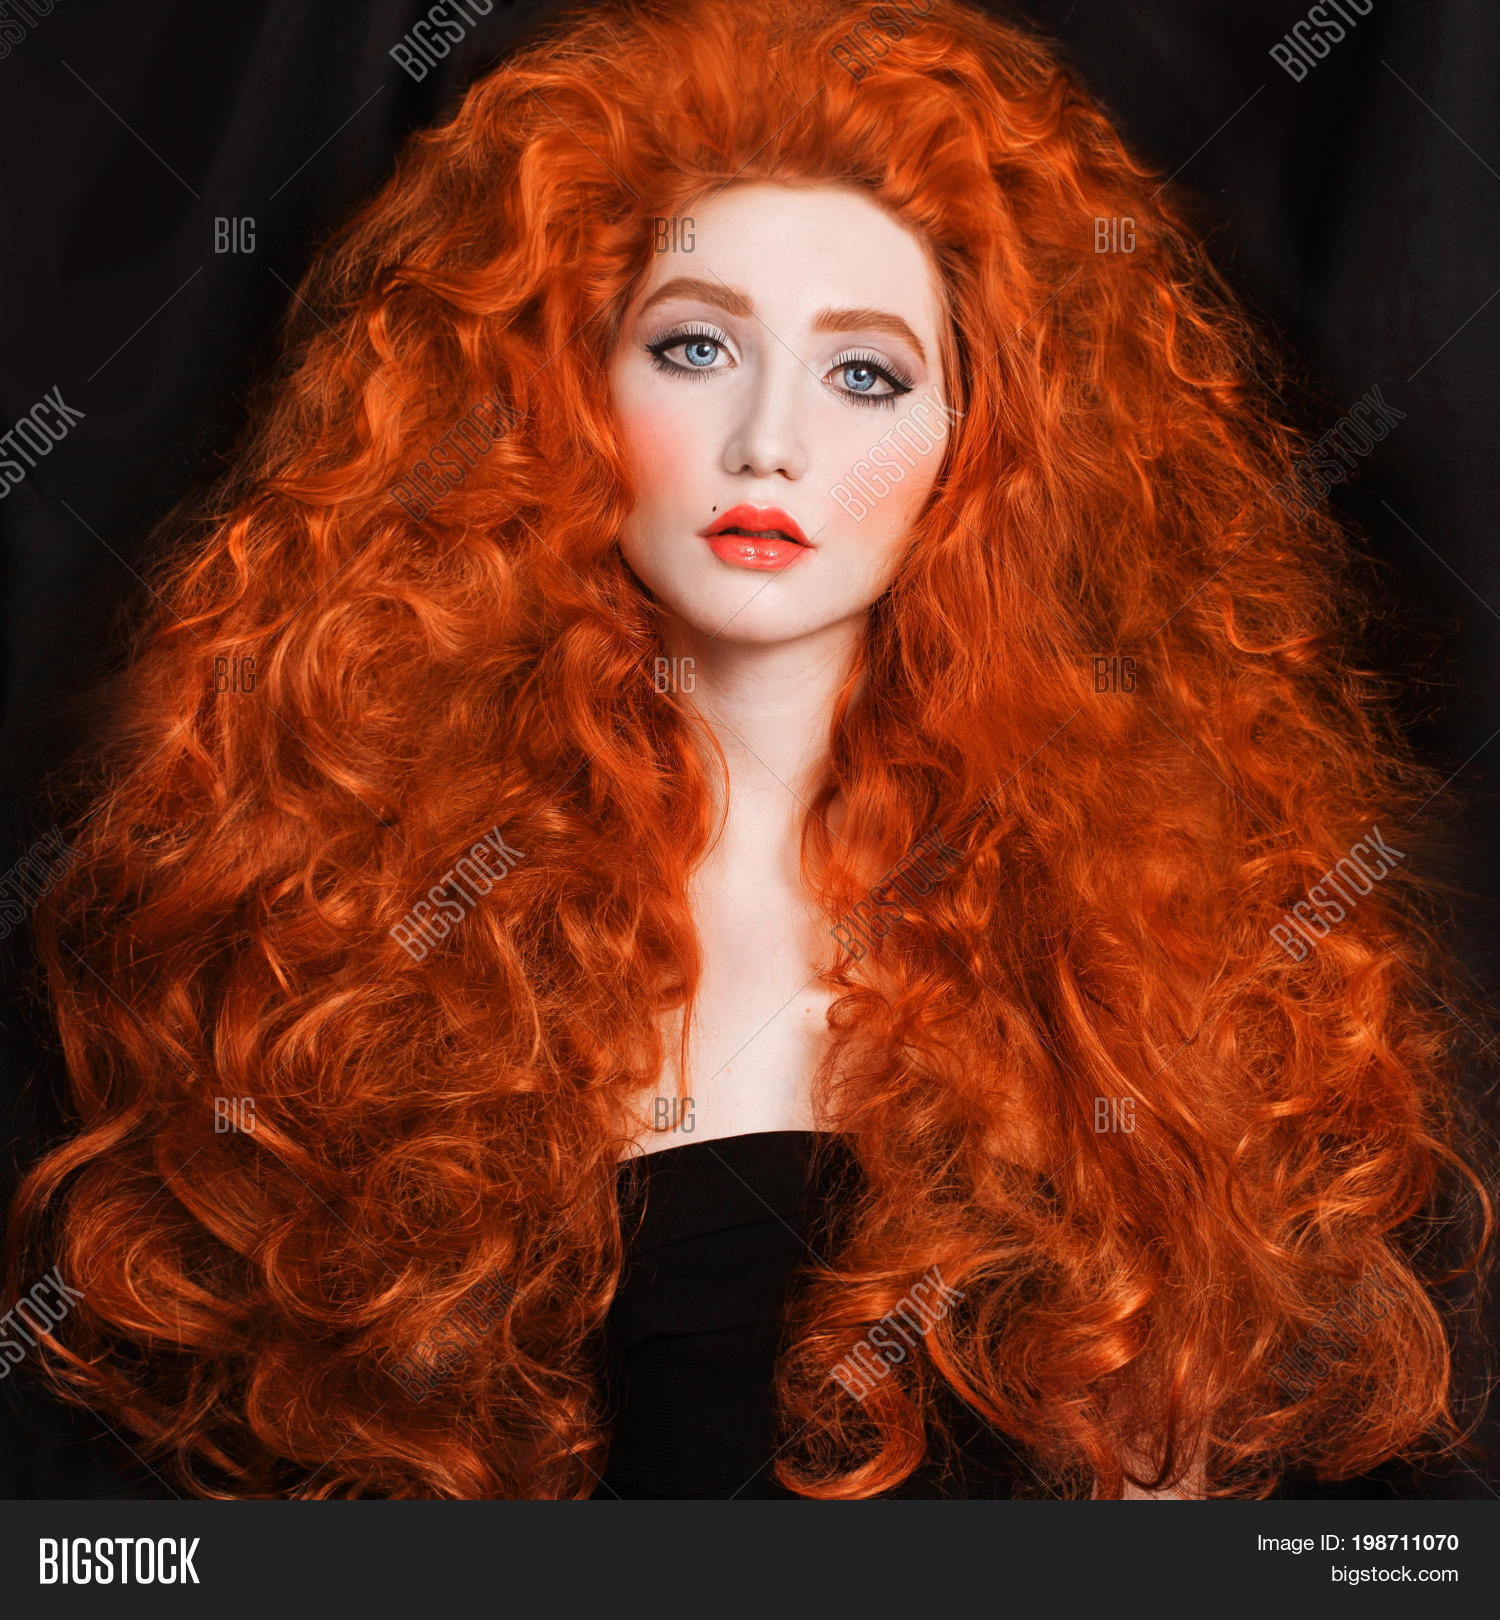 Curly haired redhead